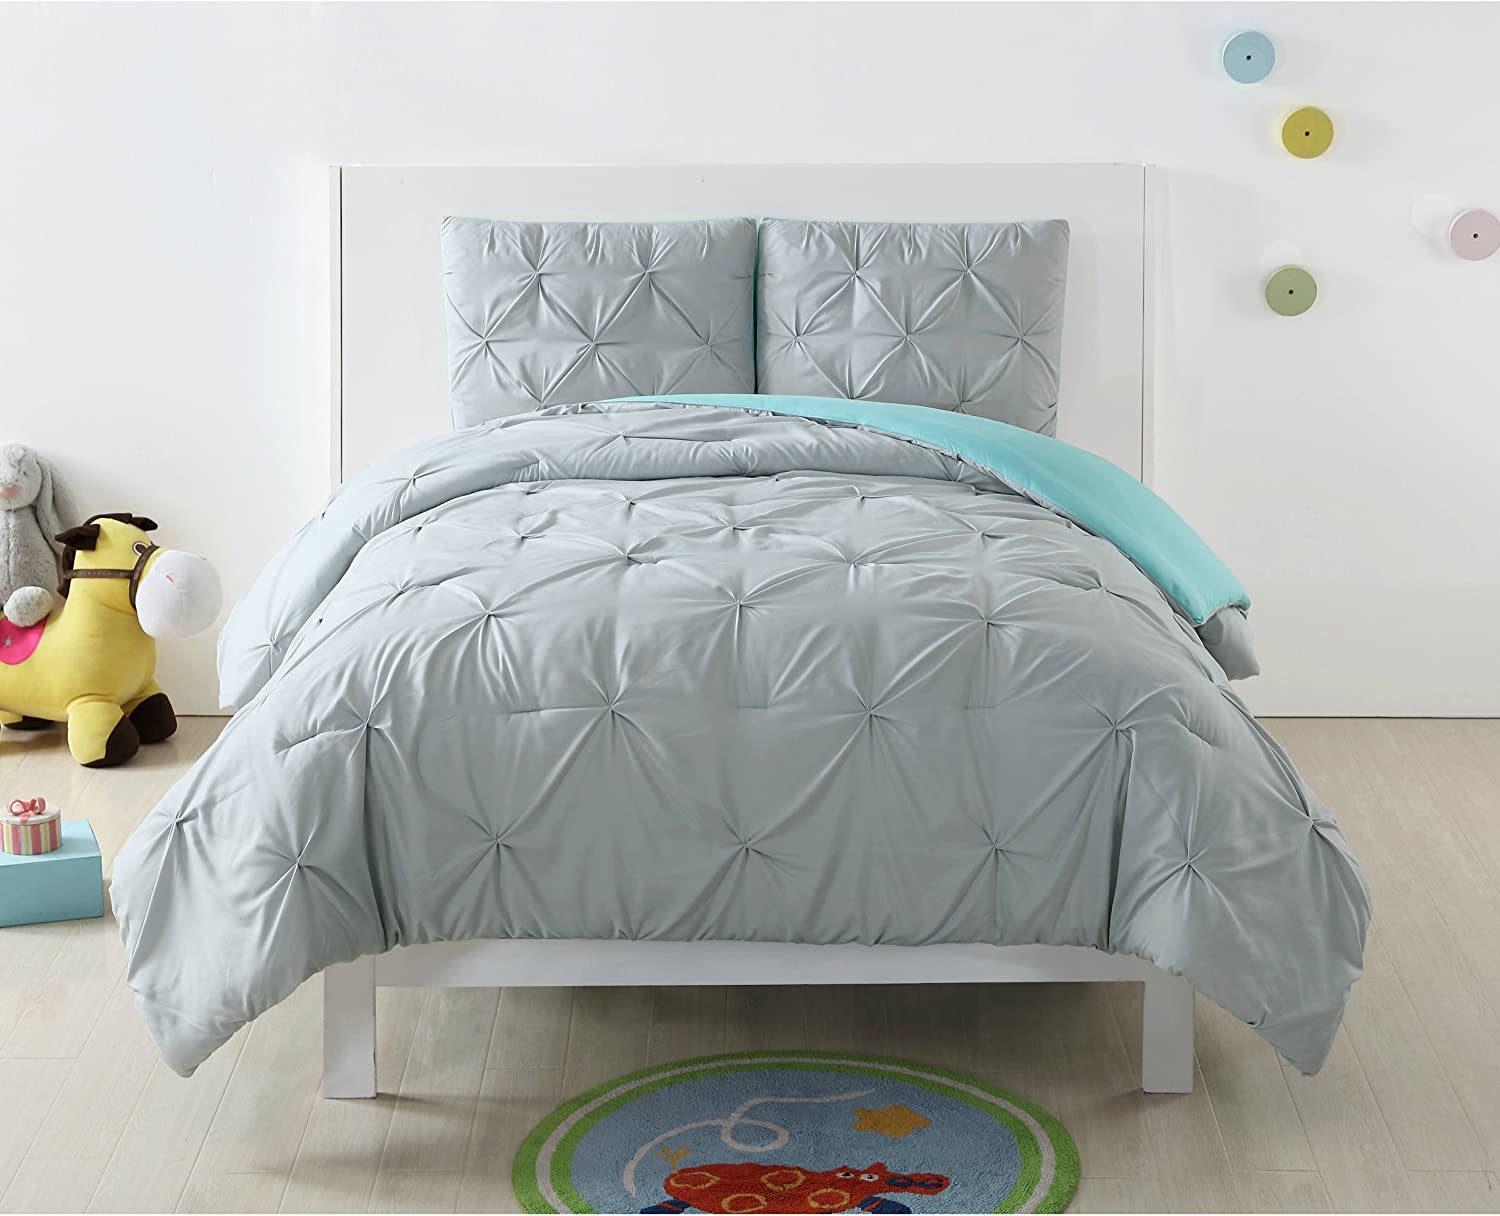 Amazon.com: PH 22 Piece Turquoise/Silver Grey Twin XL Comforter Set